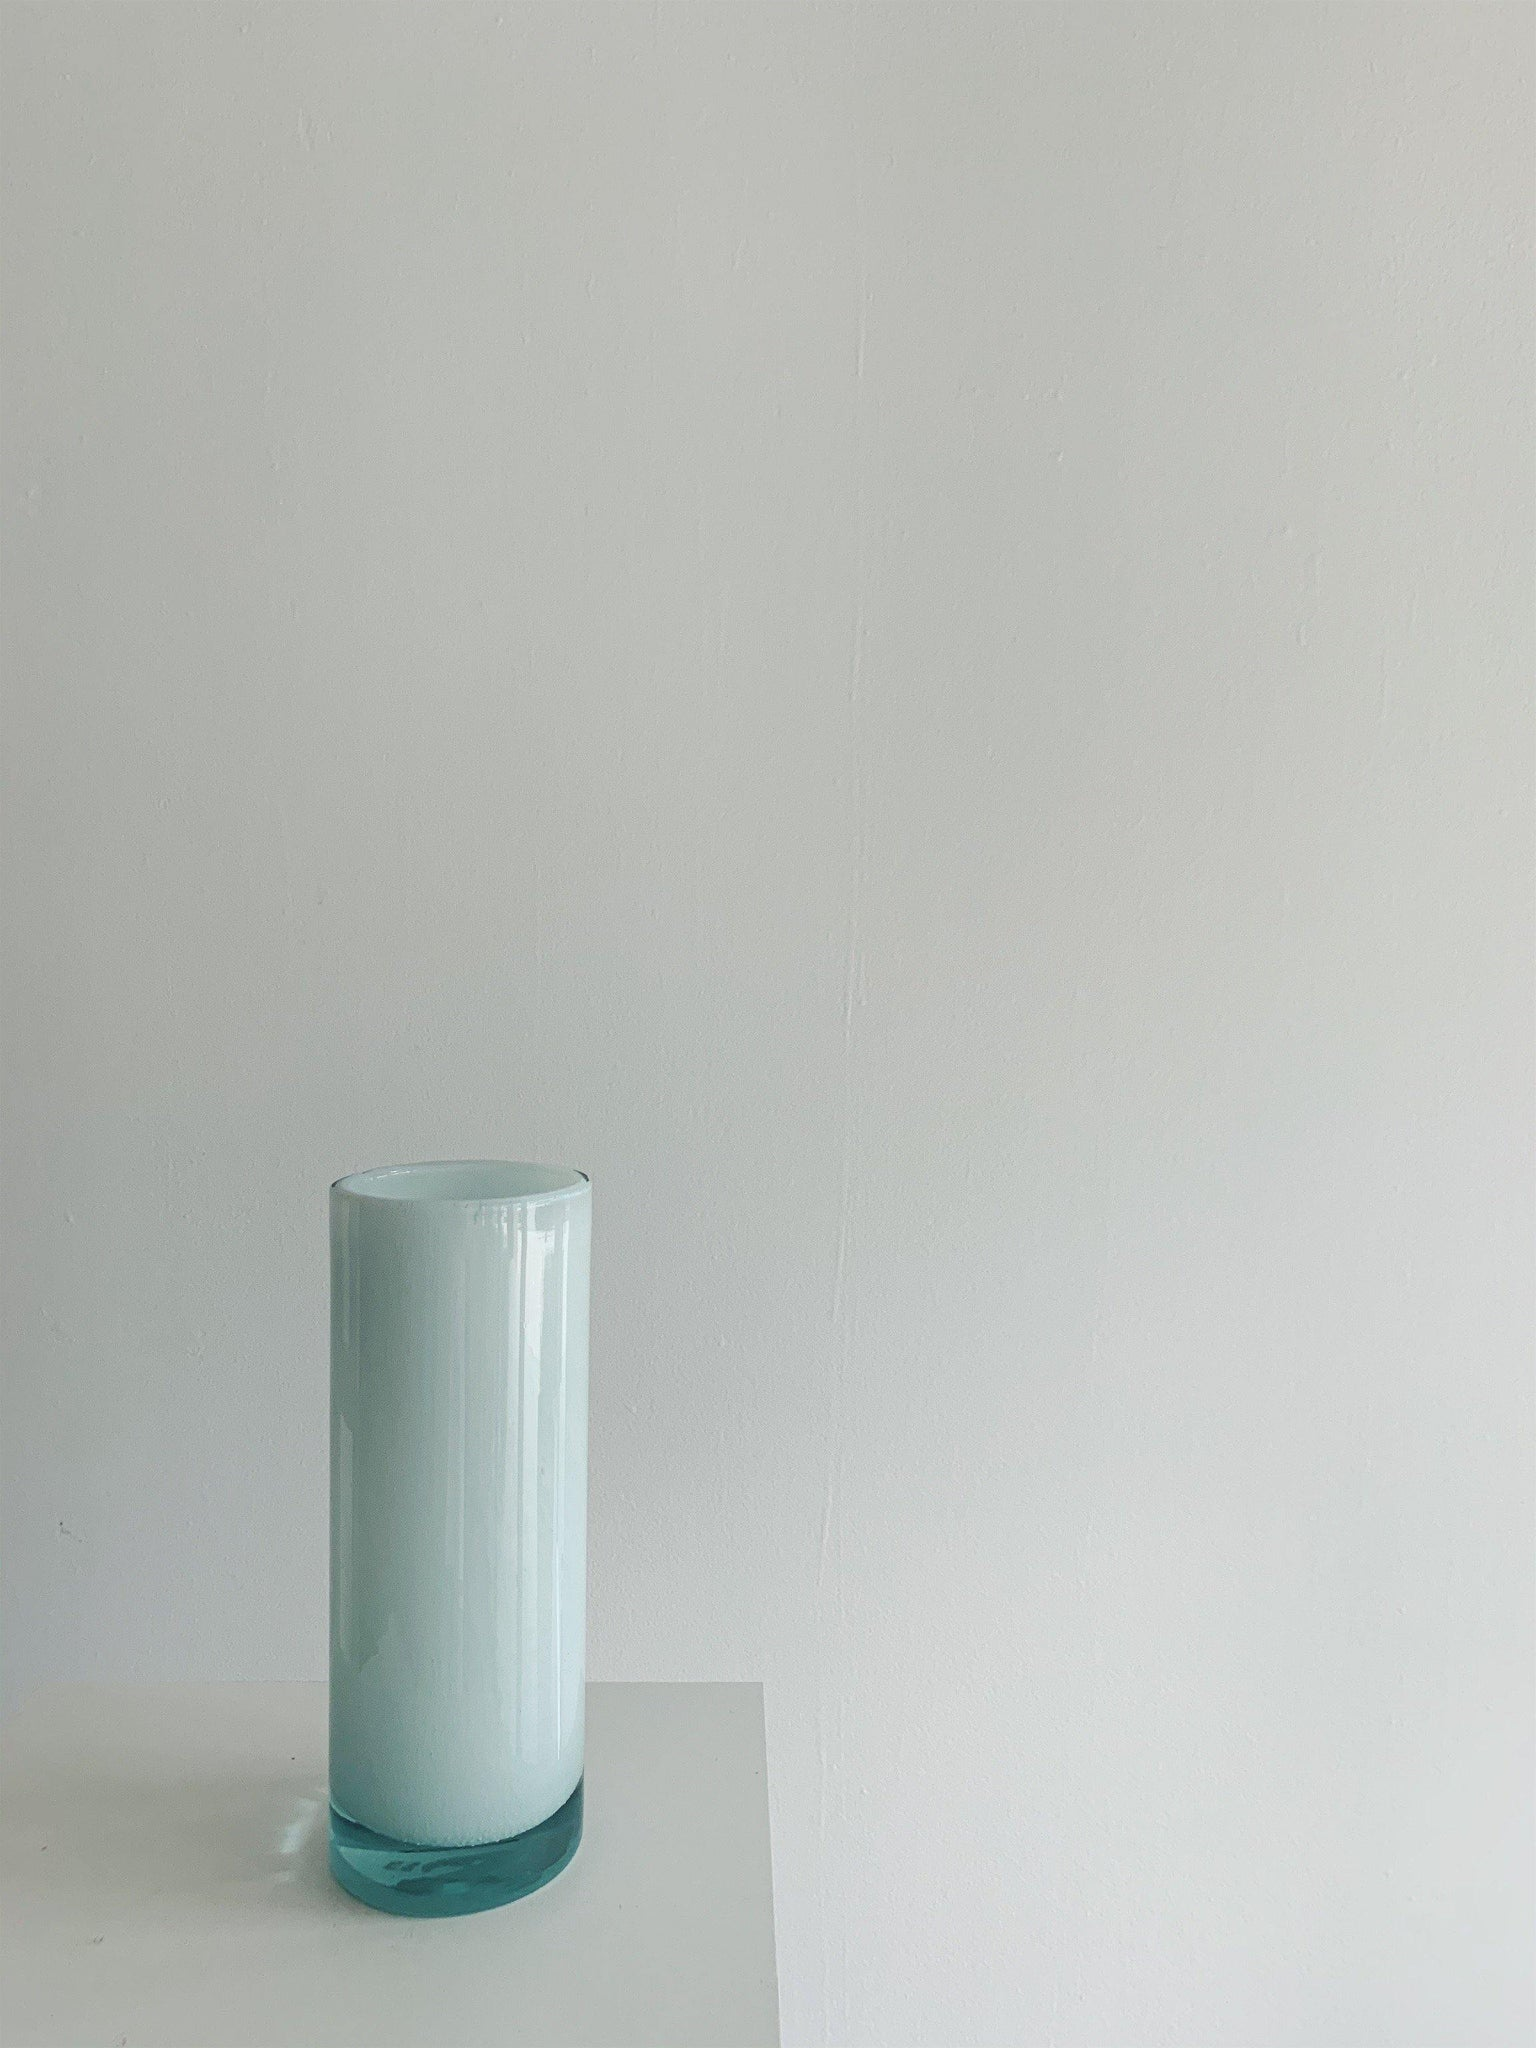 Vases - Belgian House Glass Vase - White Blue Cylinder - Belgian House - The Wild Bunch Florist - Vancouver Flower Shop Delivery